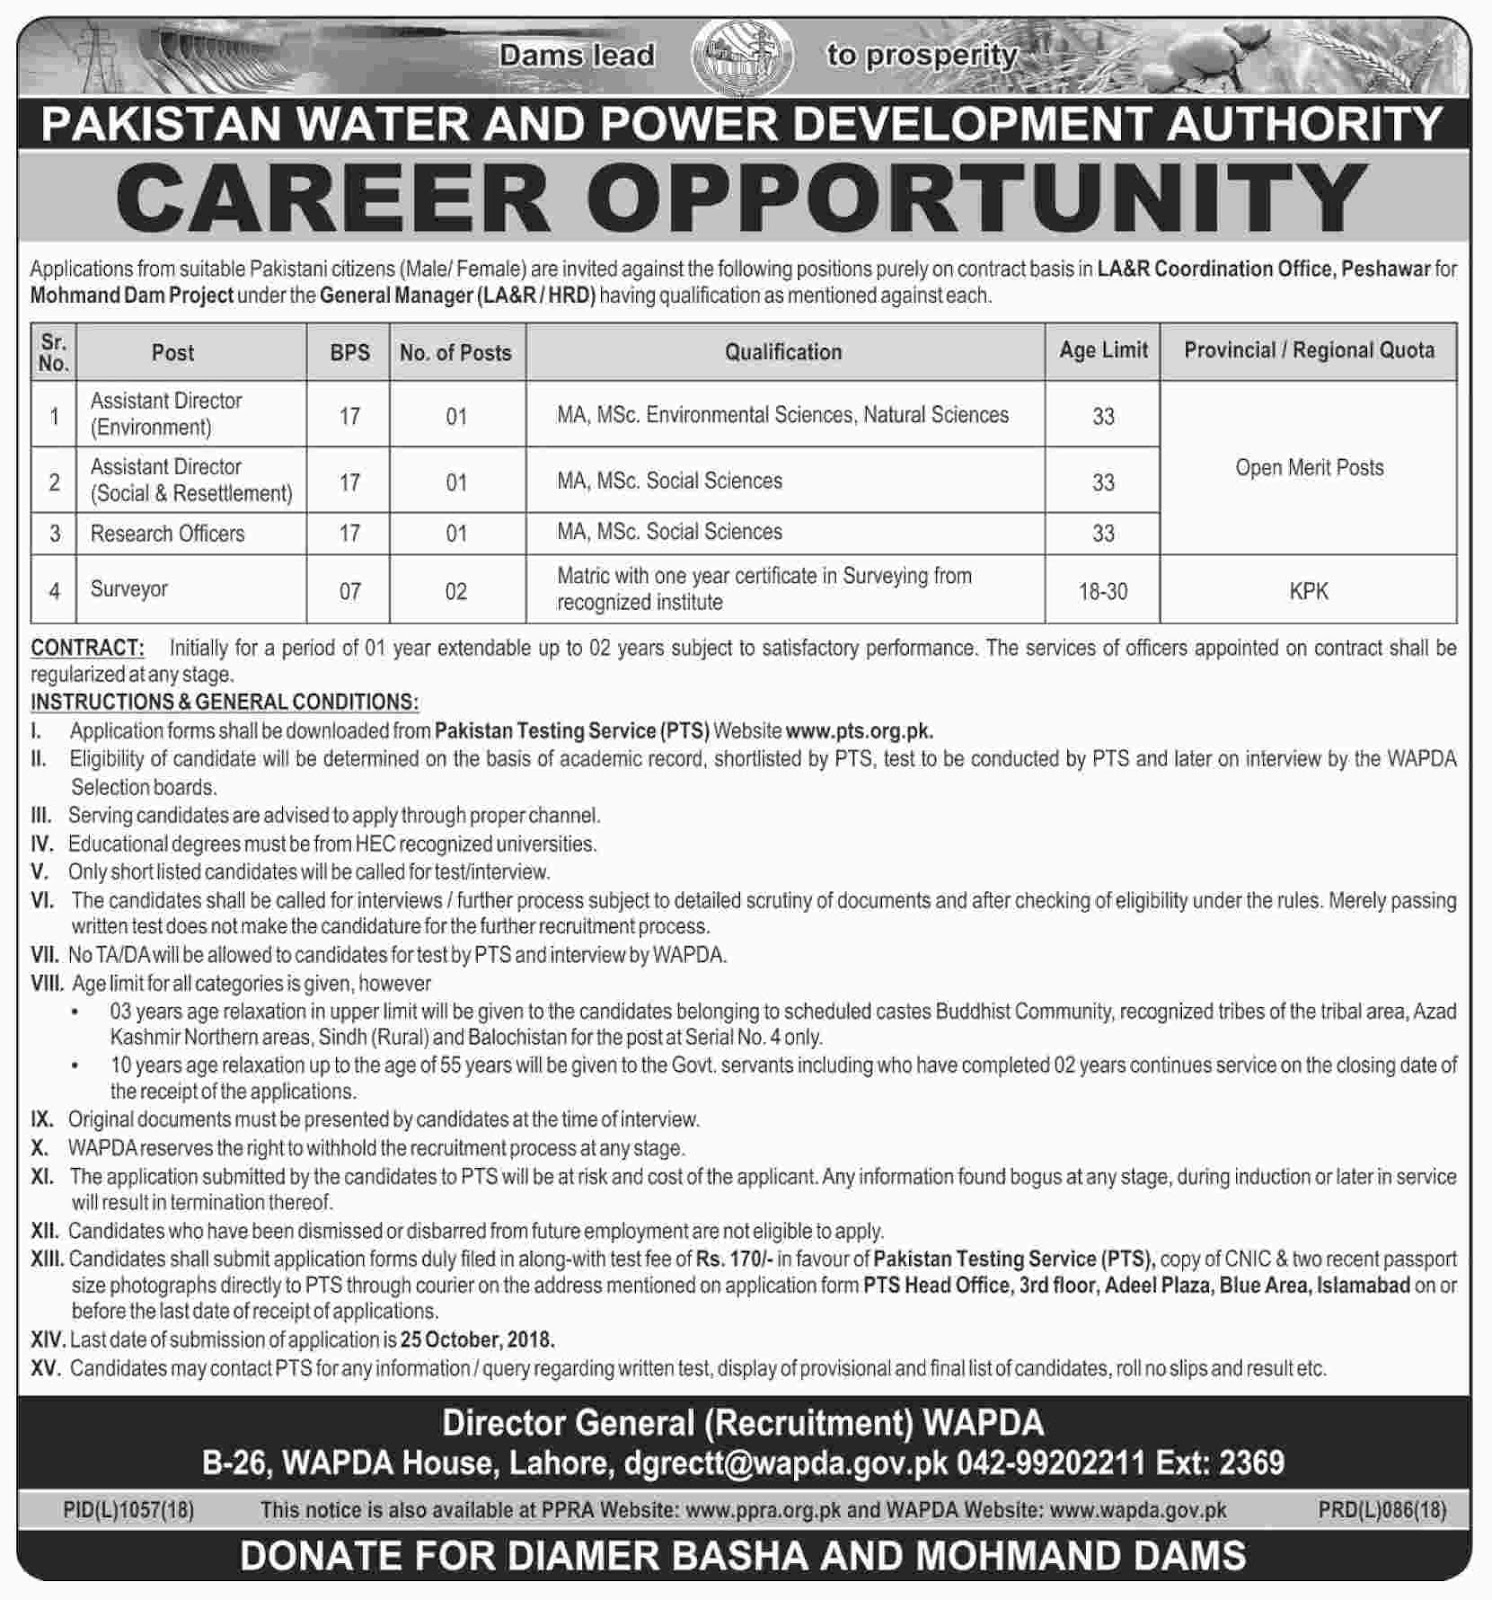 Latest Vacancies Announced in Water And Power Development Authority WAPDA - Application form via PTS 10 October 2018 - Naya Pakistan